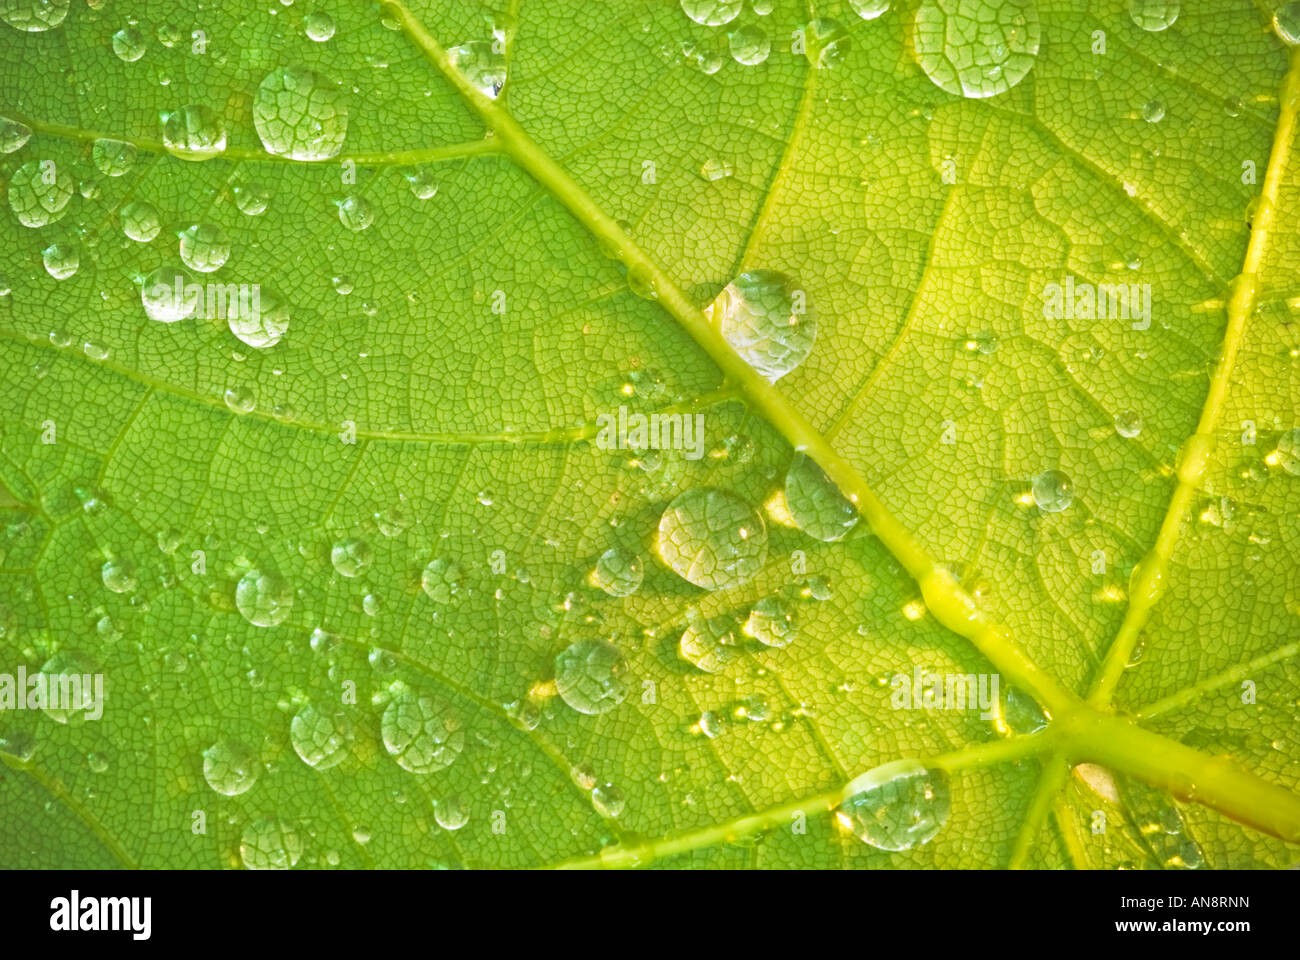 Water droplets on a leaf in the New Forest, Hampshire, UK Stock Photo